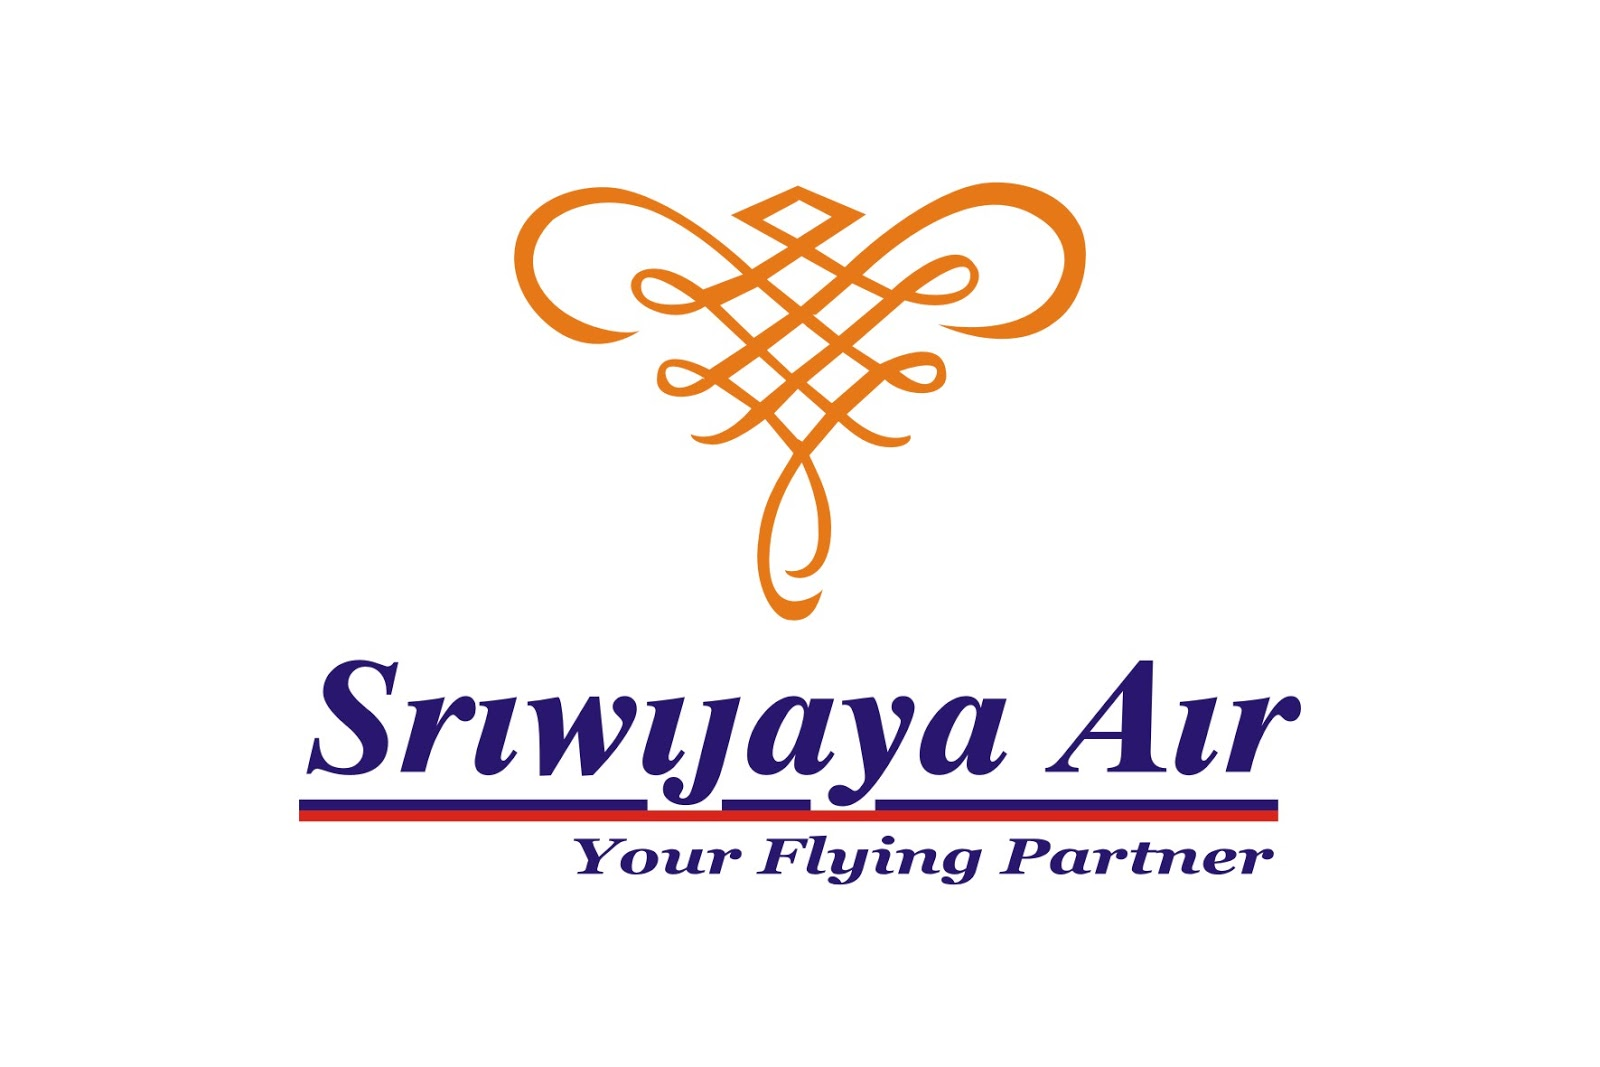 Sriwijaya Air Vector Logo Download Share A Logo Sriwijaya Air Pelauts Com 1600x1067